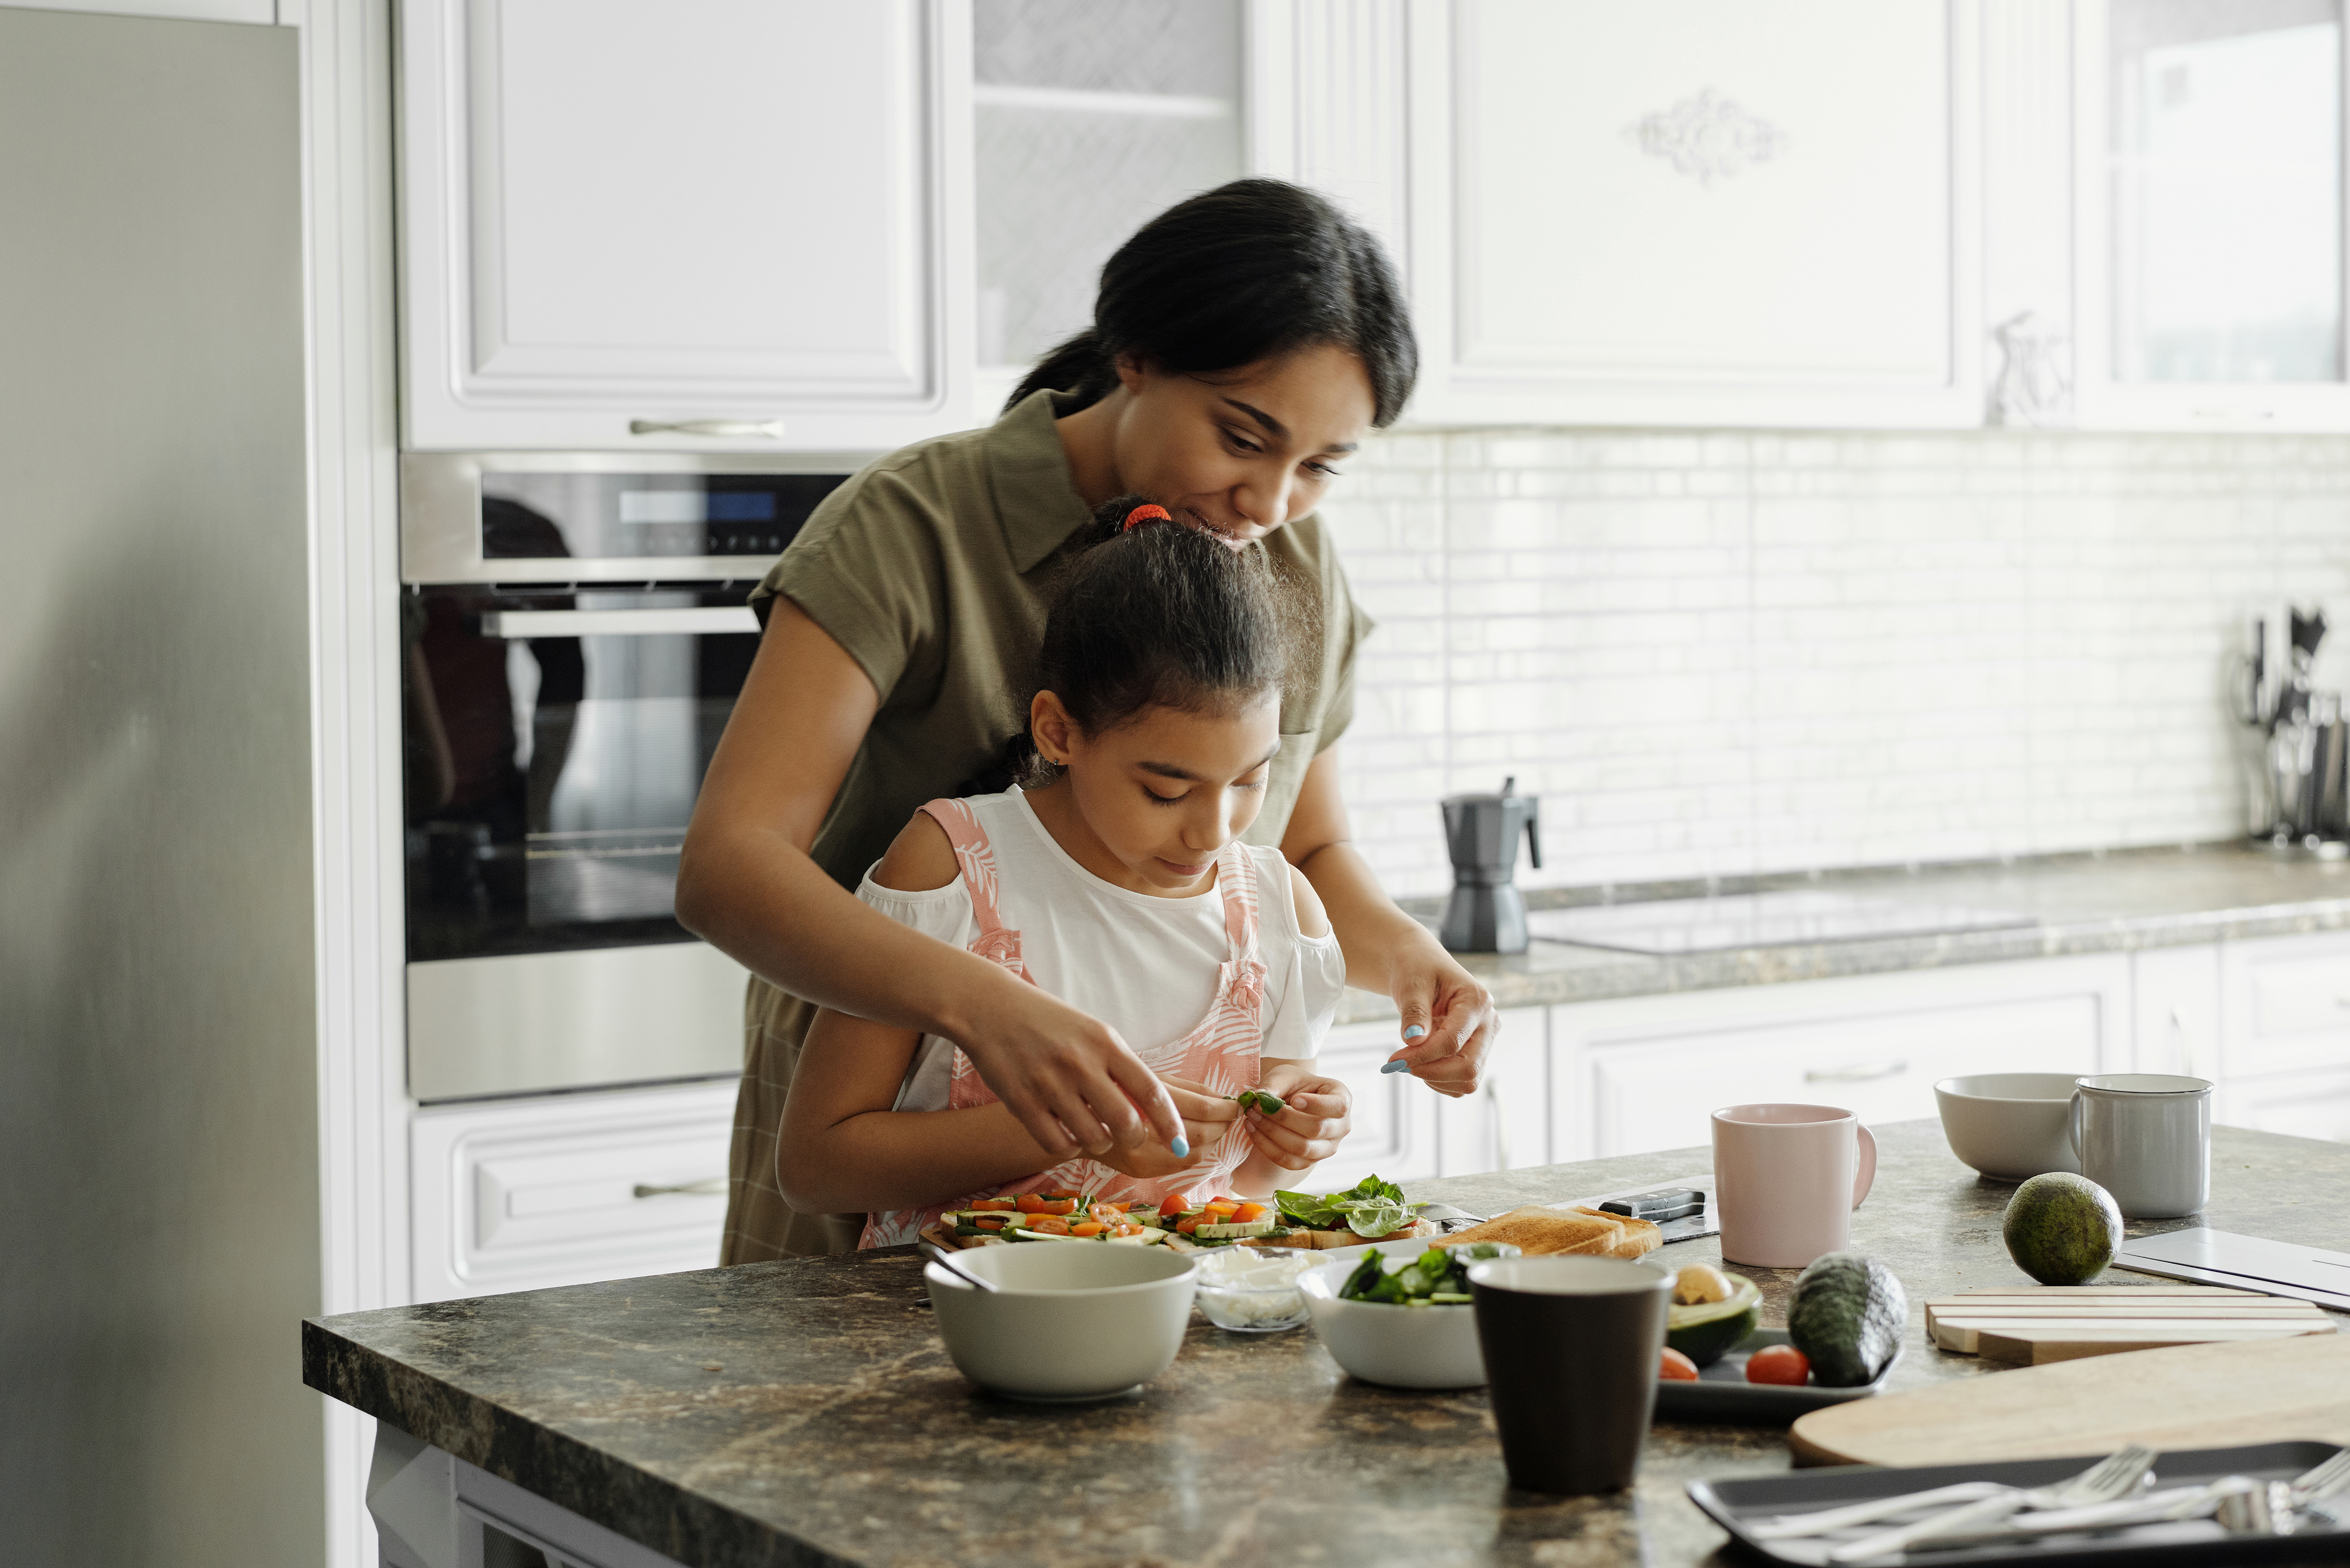 mother-and-daughter-preparing-avocado-toast-4259707